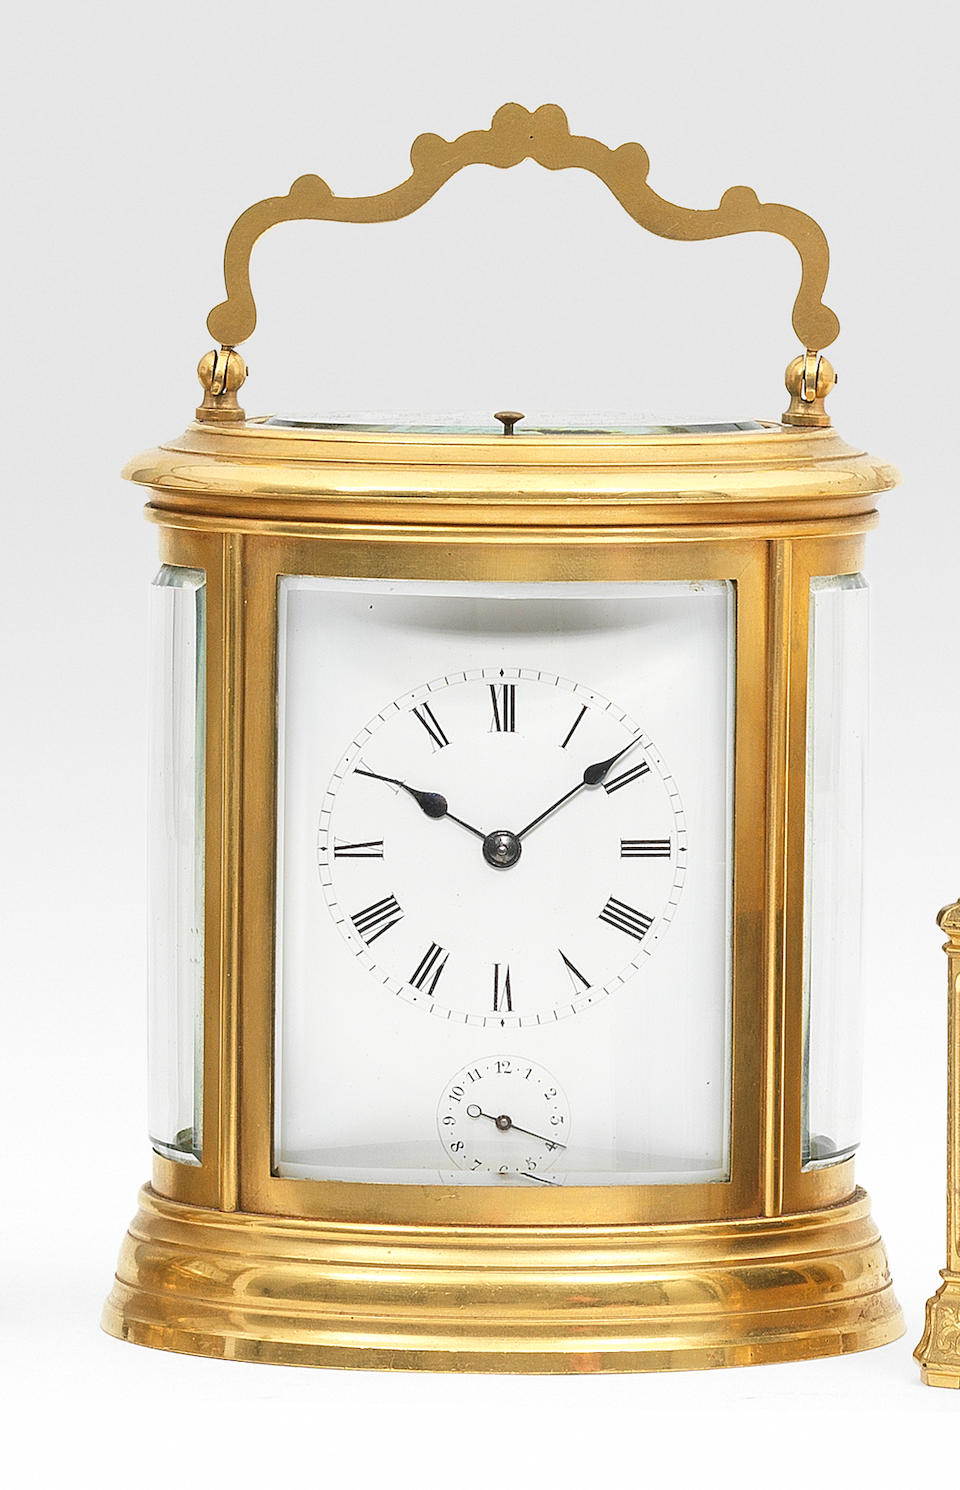 A good late 19th century French gilt brass oval grande-sonnerie striking and repeating carriage clock in original box  The movement numbered 713. 2